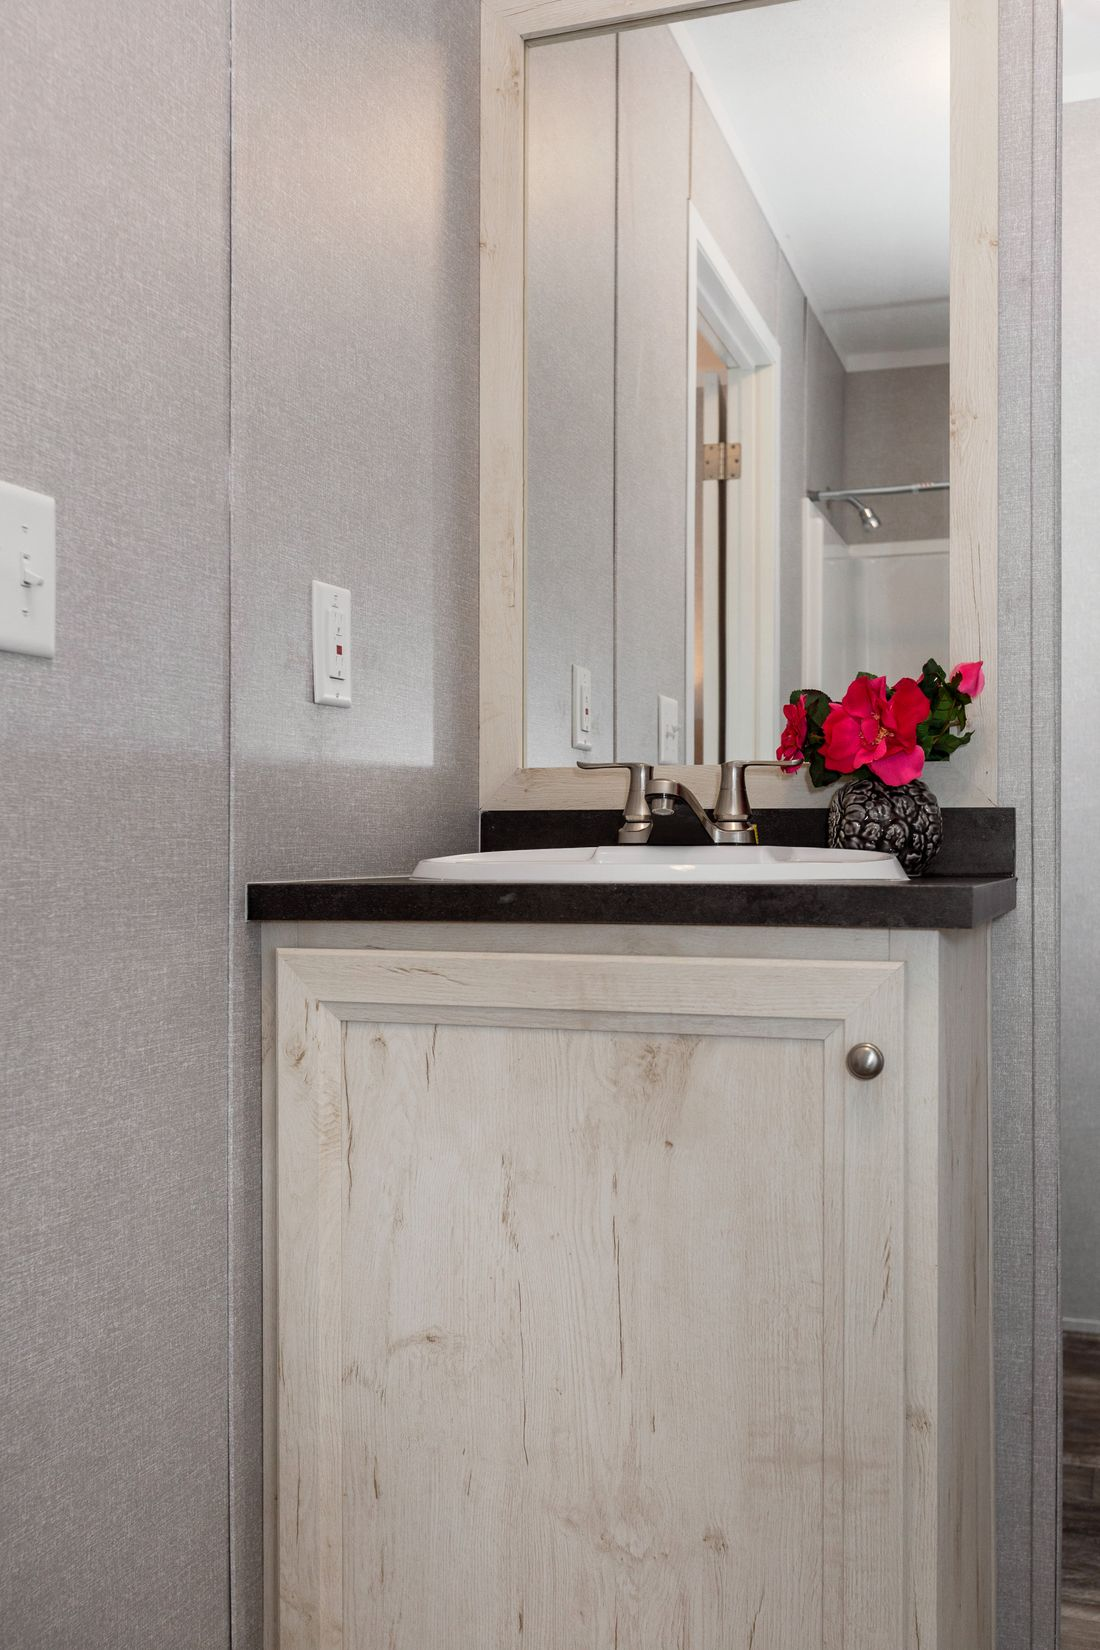 The SAPPHIRE Master Bathroom. This Manufactured Mobile Home features 3 bedrooms and 2 baths.